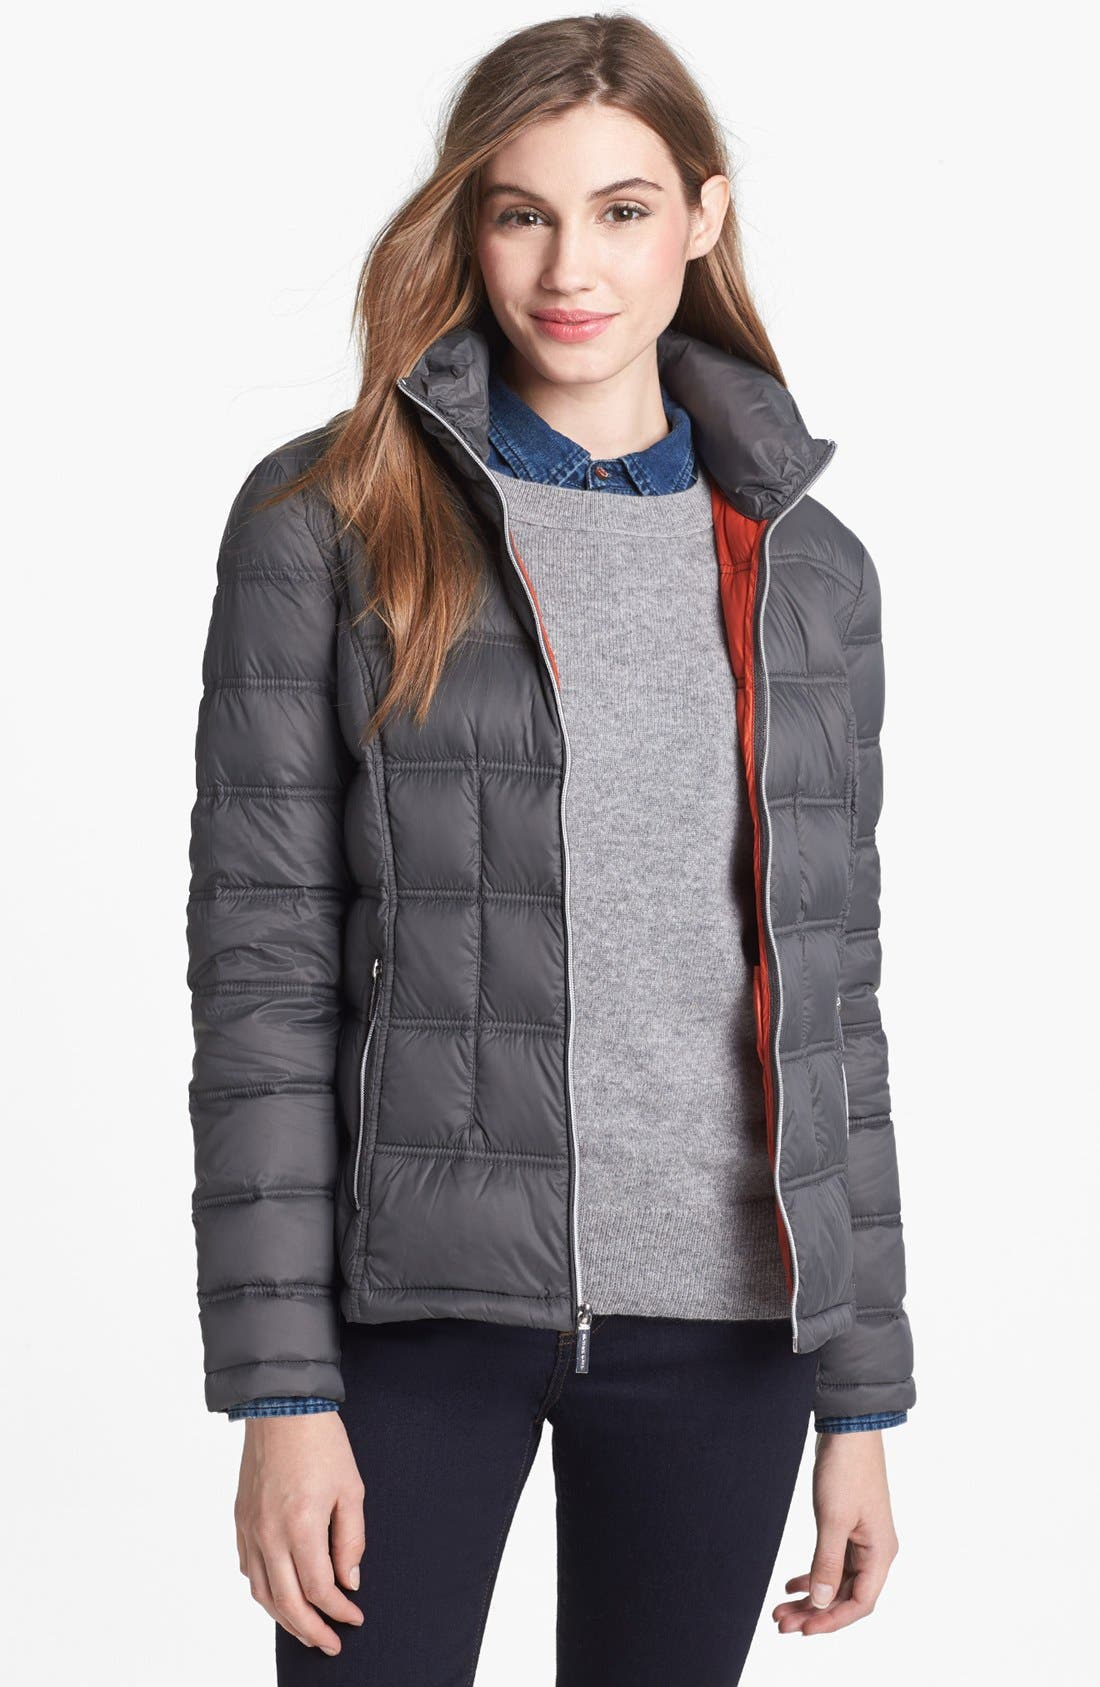 Main Image - MICHAEL Michael Kors Packable Down Jacket with Detachable Hood (Petite) (Online Only)